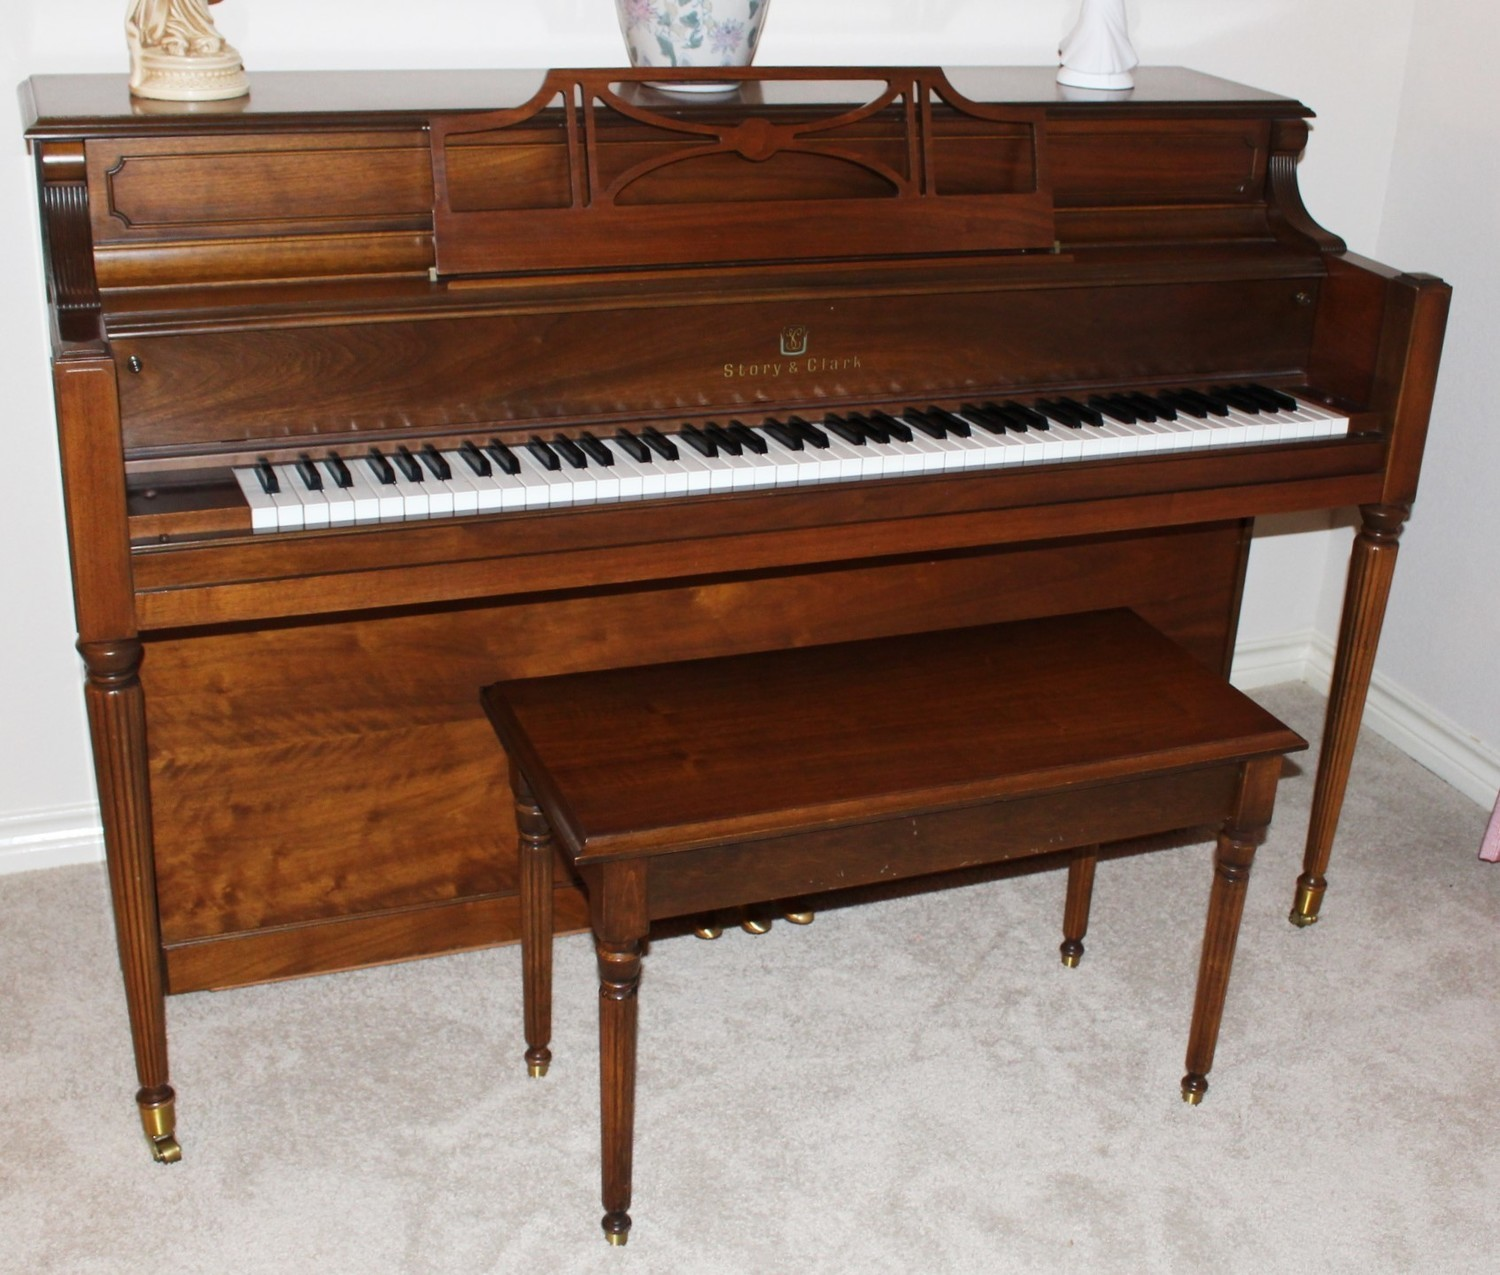 Vintage Piano Story and Clark Upright w/ Original Bench